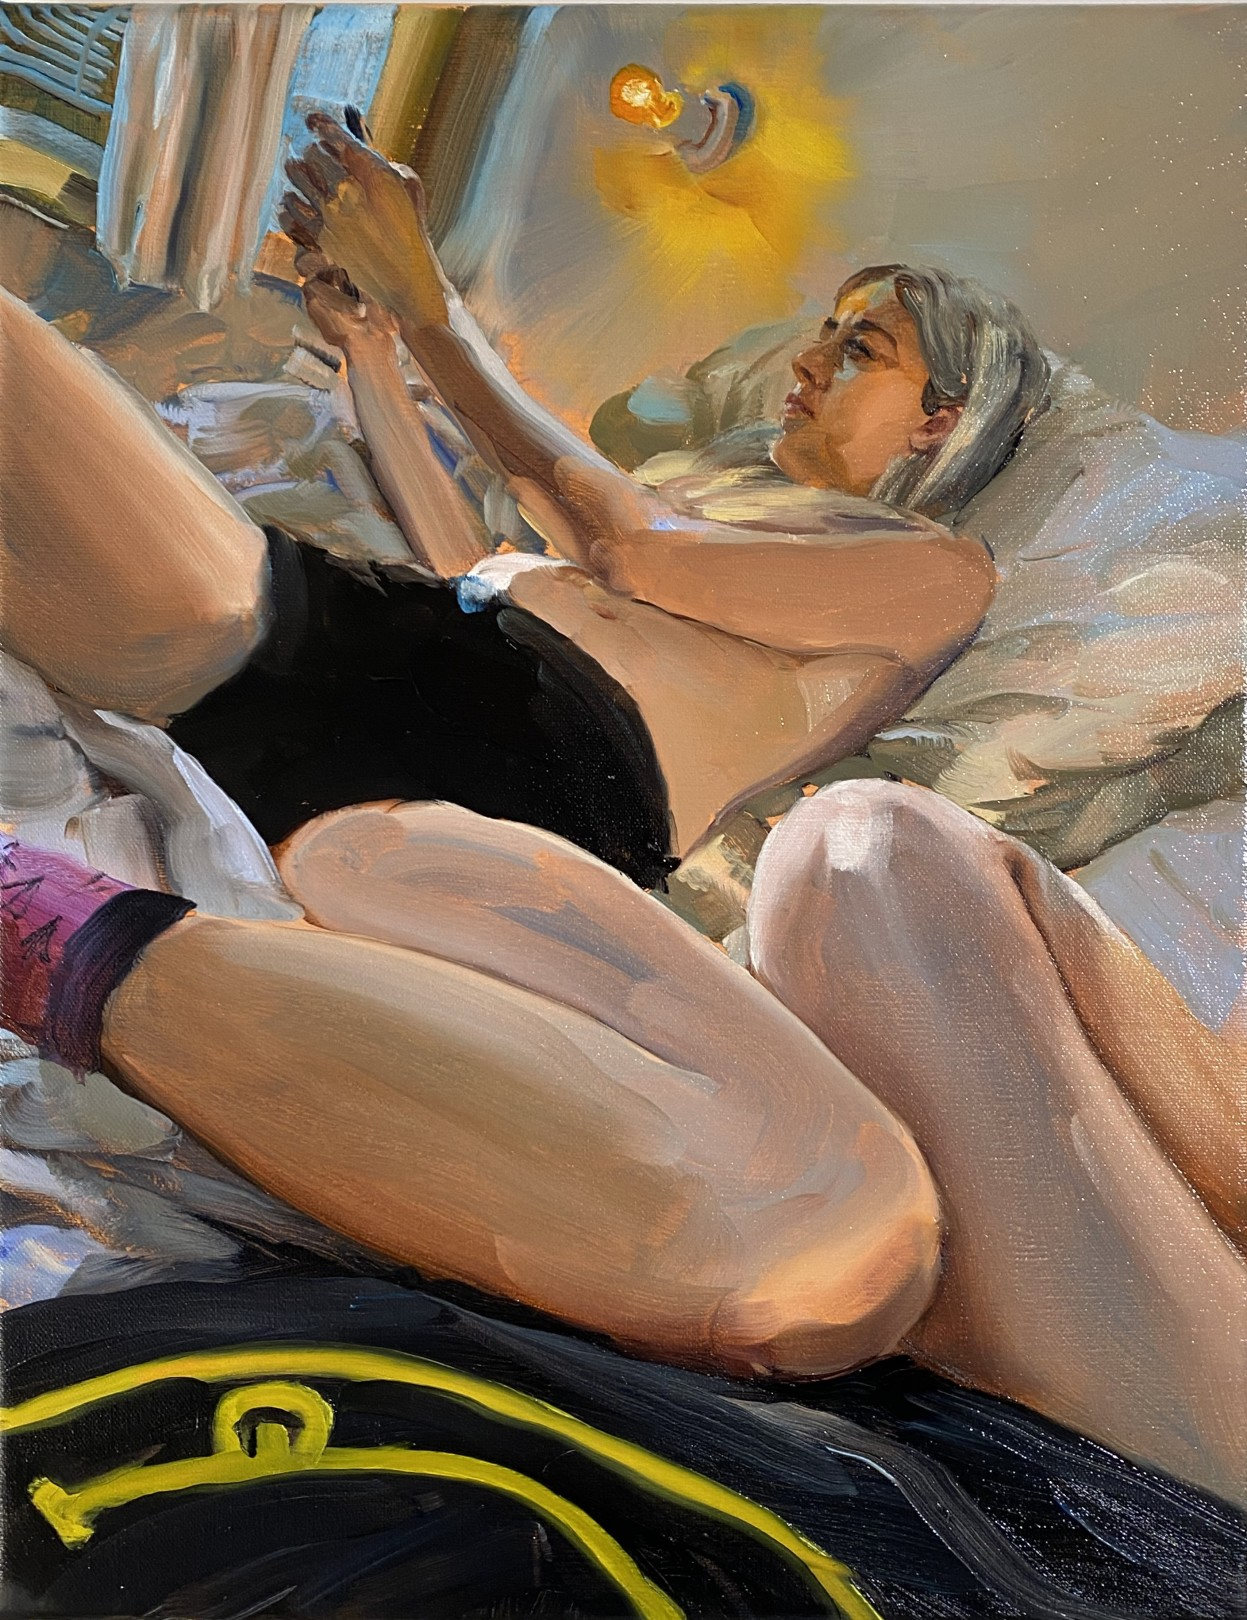 Jenna Gribbon Doing Nothing, 2020 Oil on linen 36 x 28 cm. / 14 x 11 in. Courtesy Fredericks & Freiser and copyright of the artist